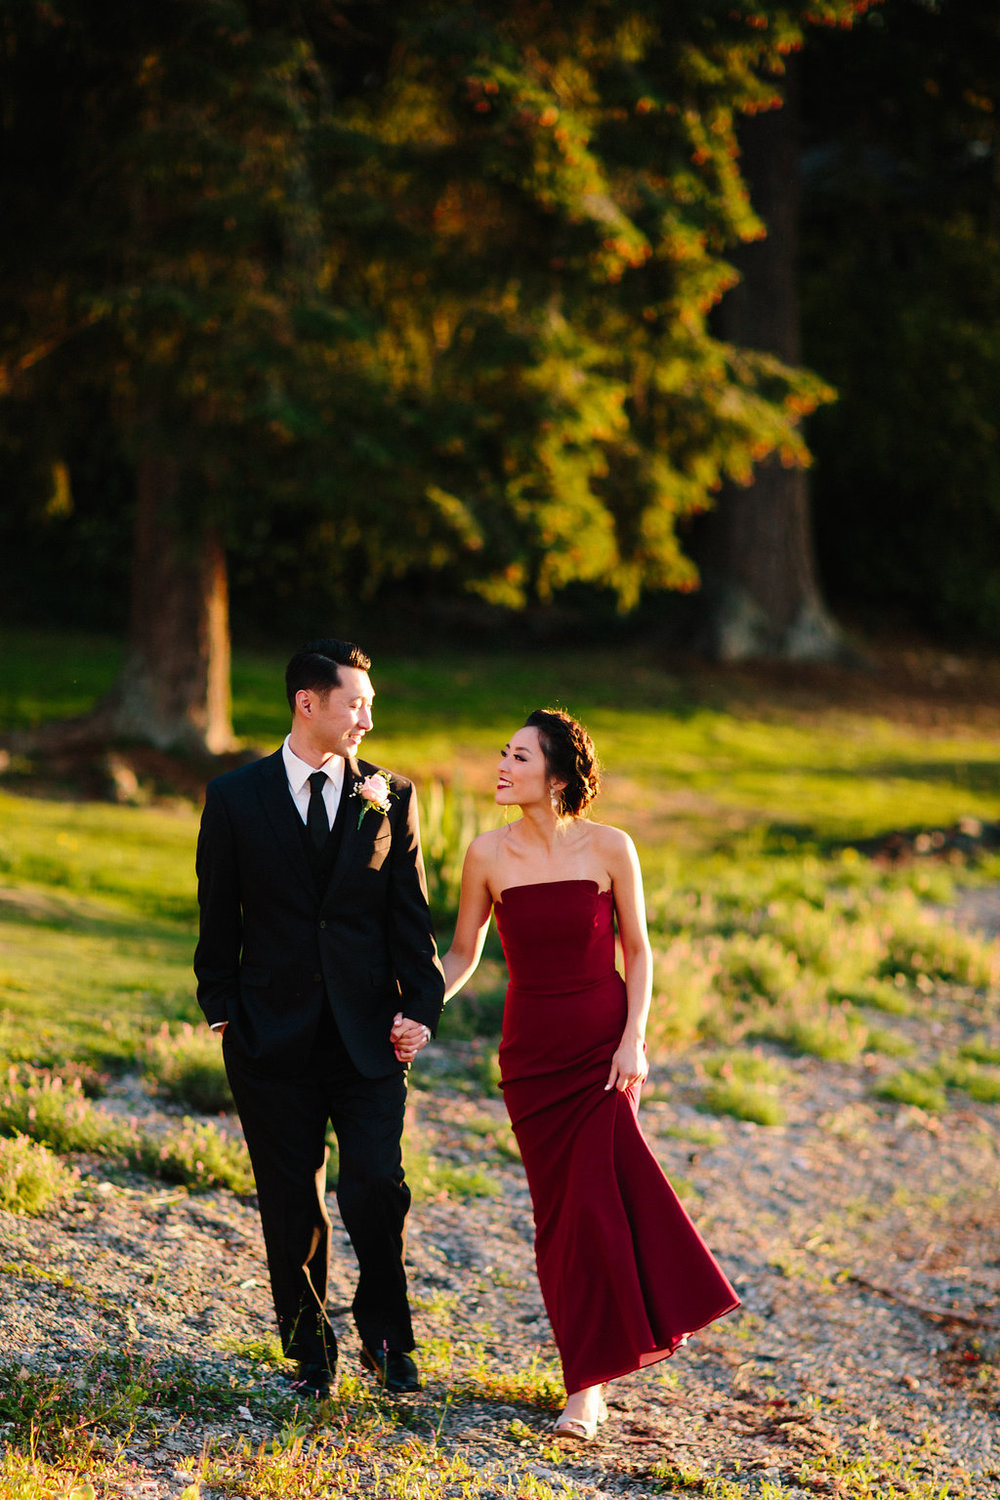 Kellylemonphotography_lucy+kento_weddingpreviews-51.jpg